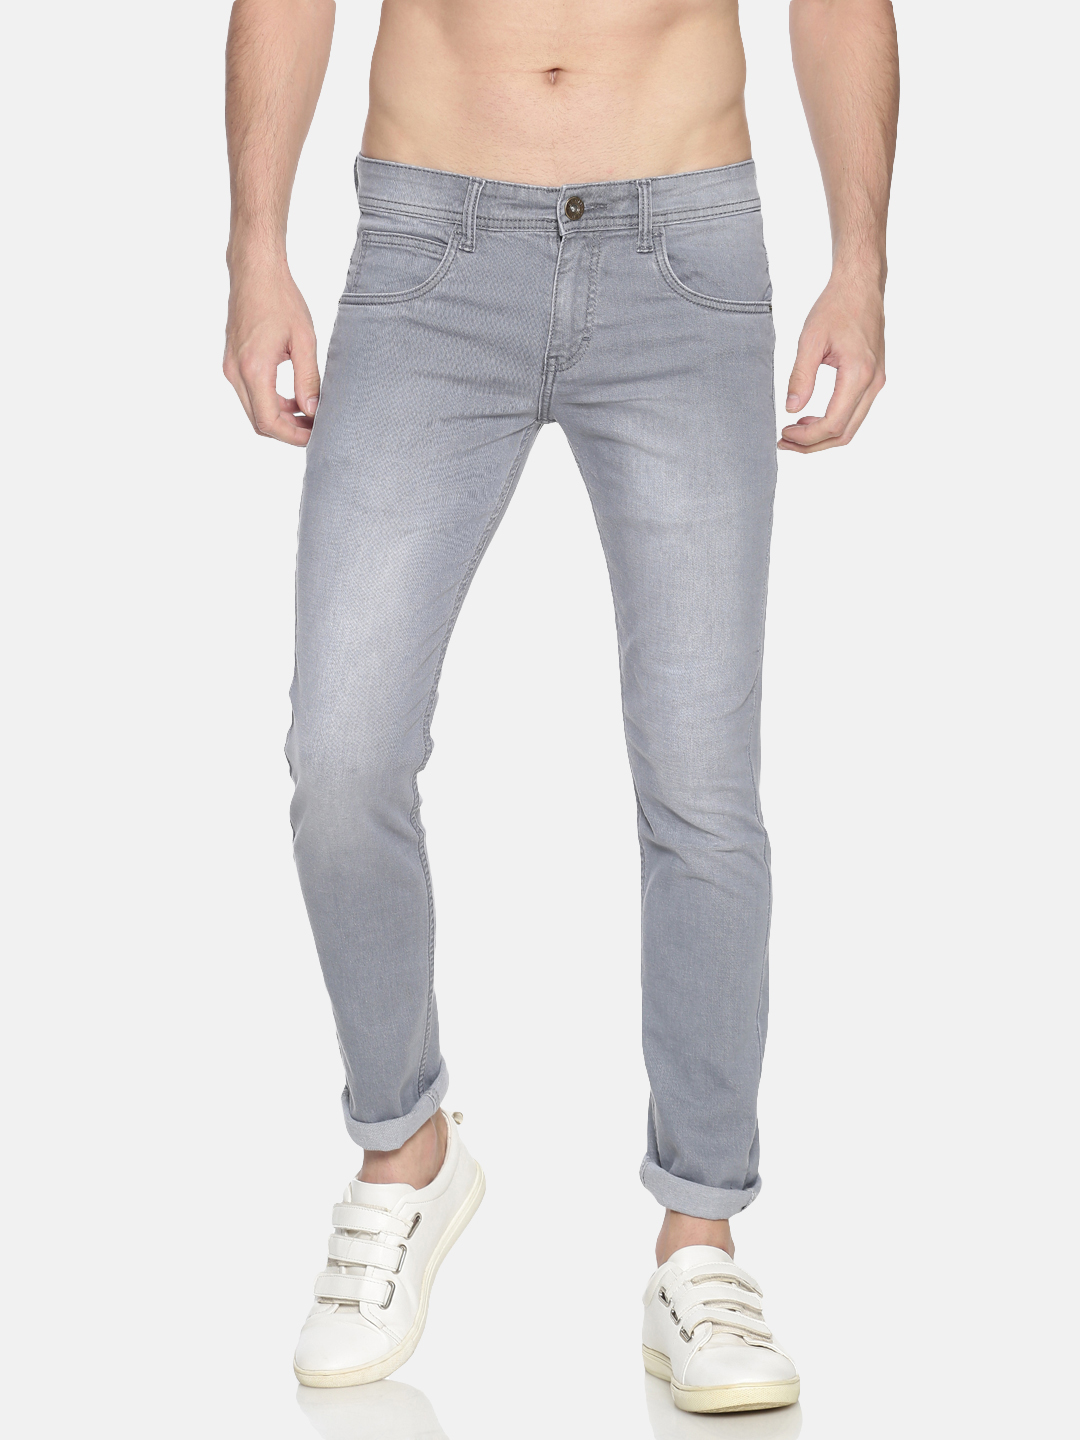 Chennis | Chennis Men's Casual Clean Look Jeans, Grey